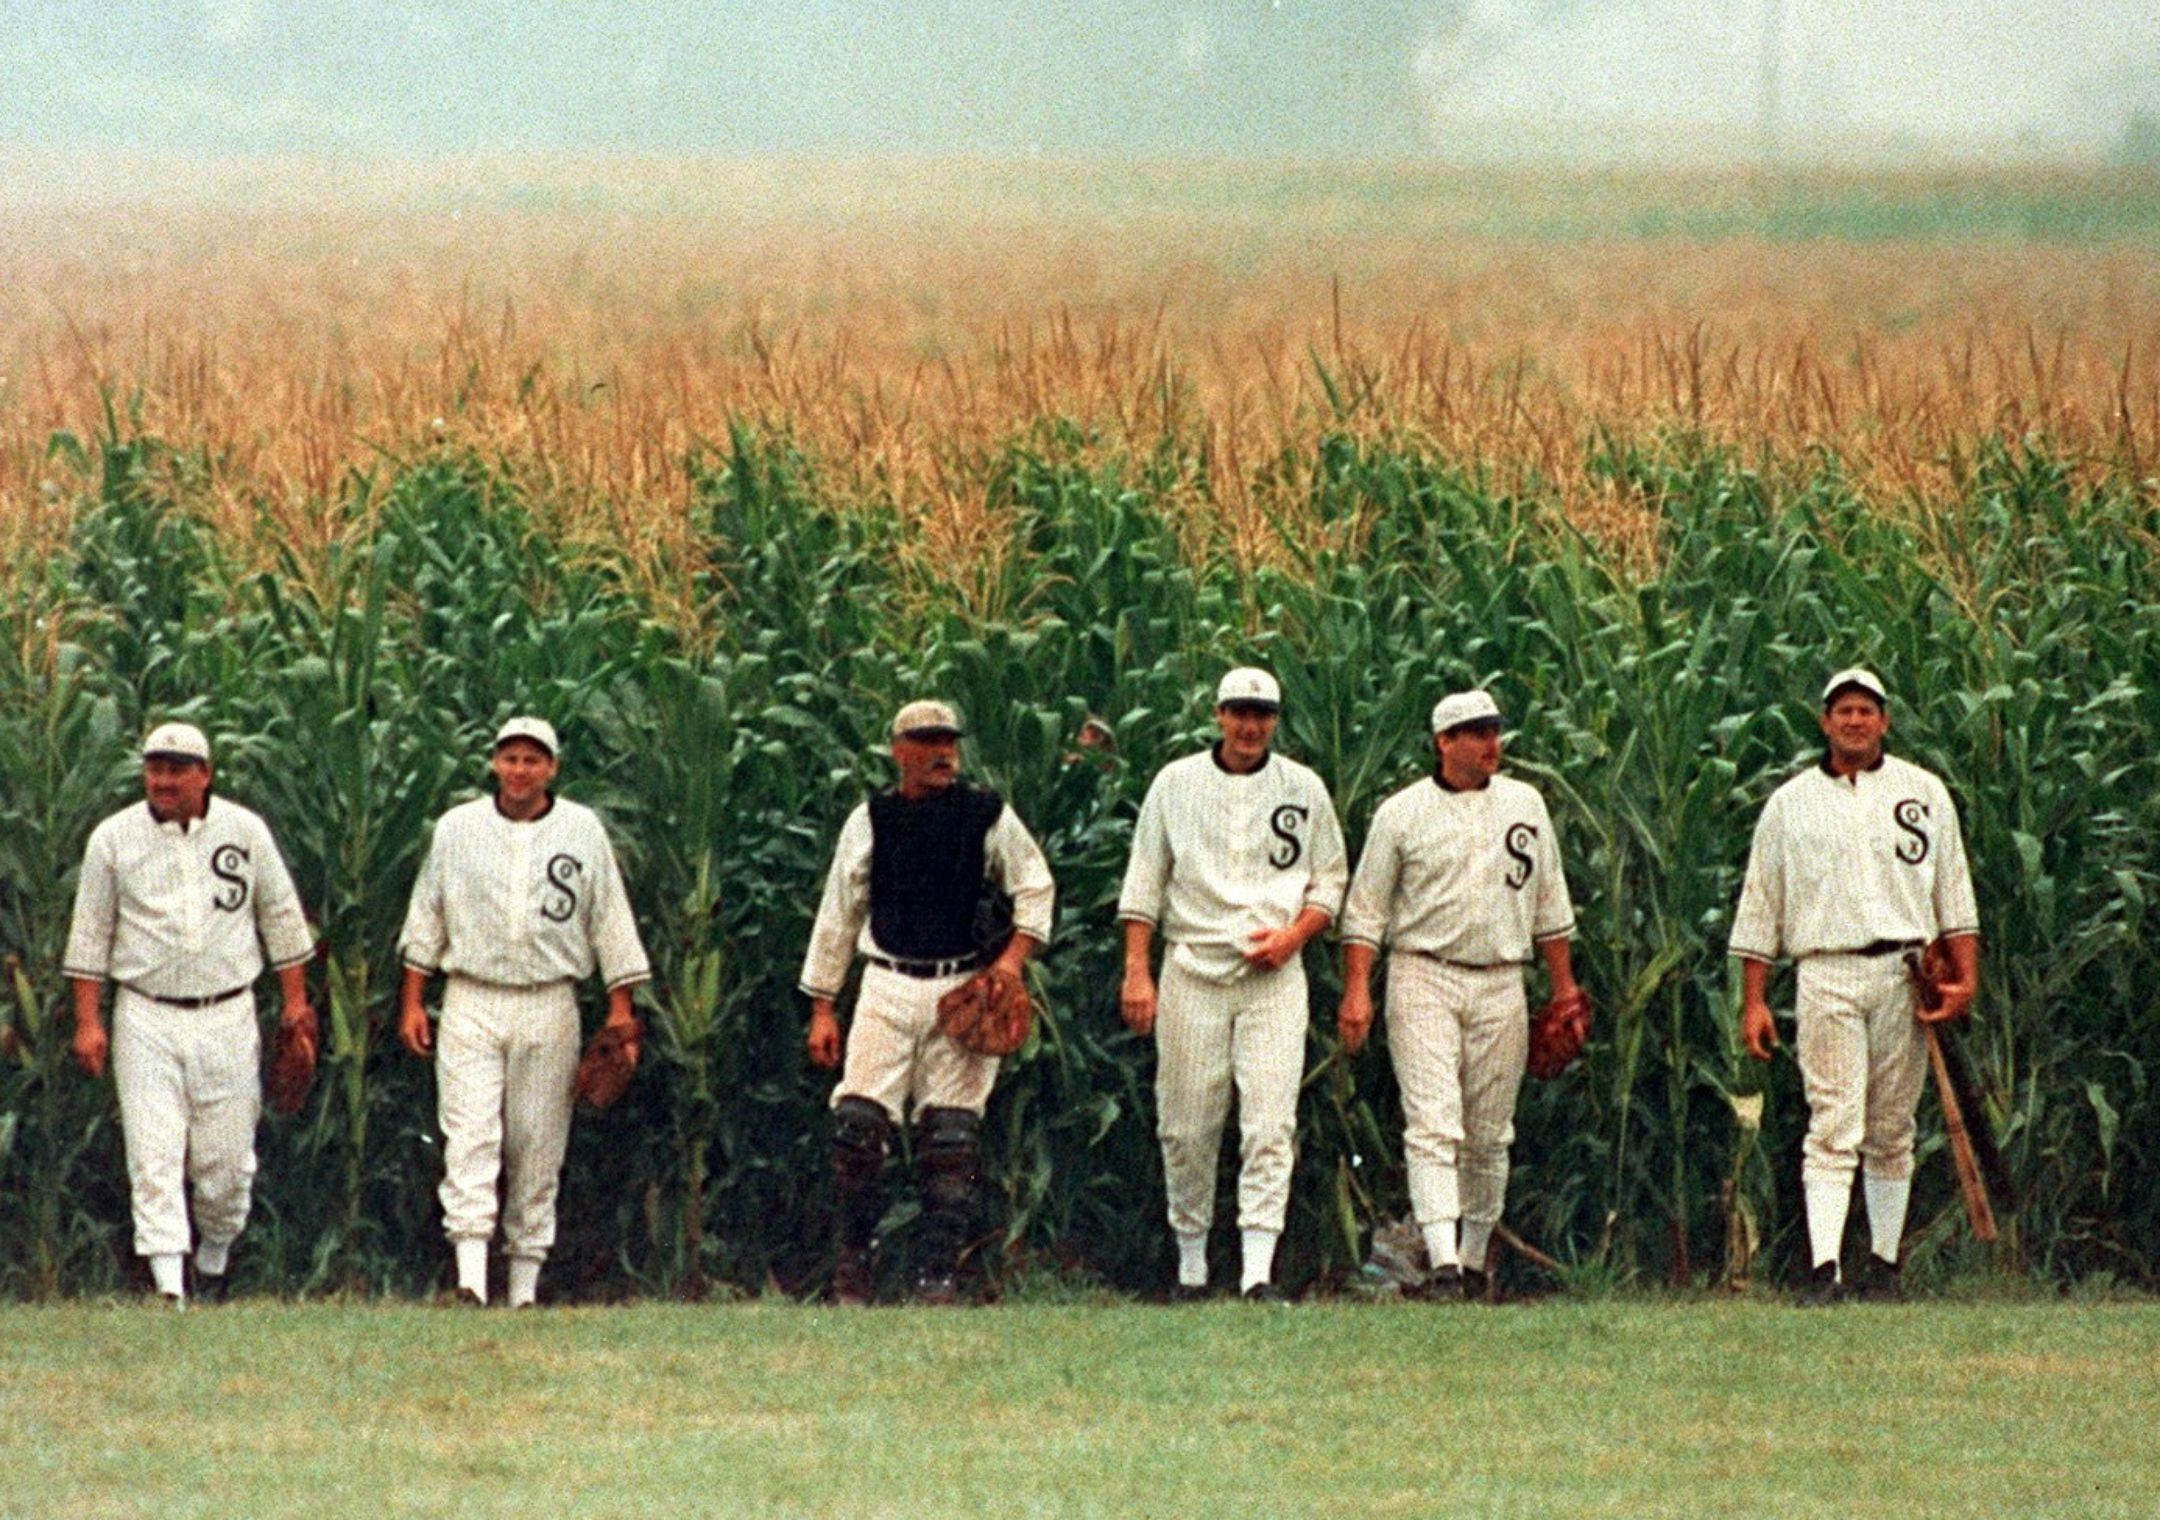 The Best Movies About Baseball